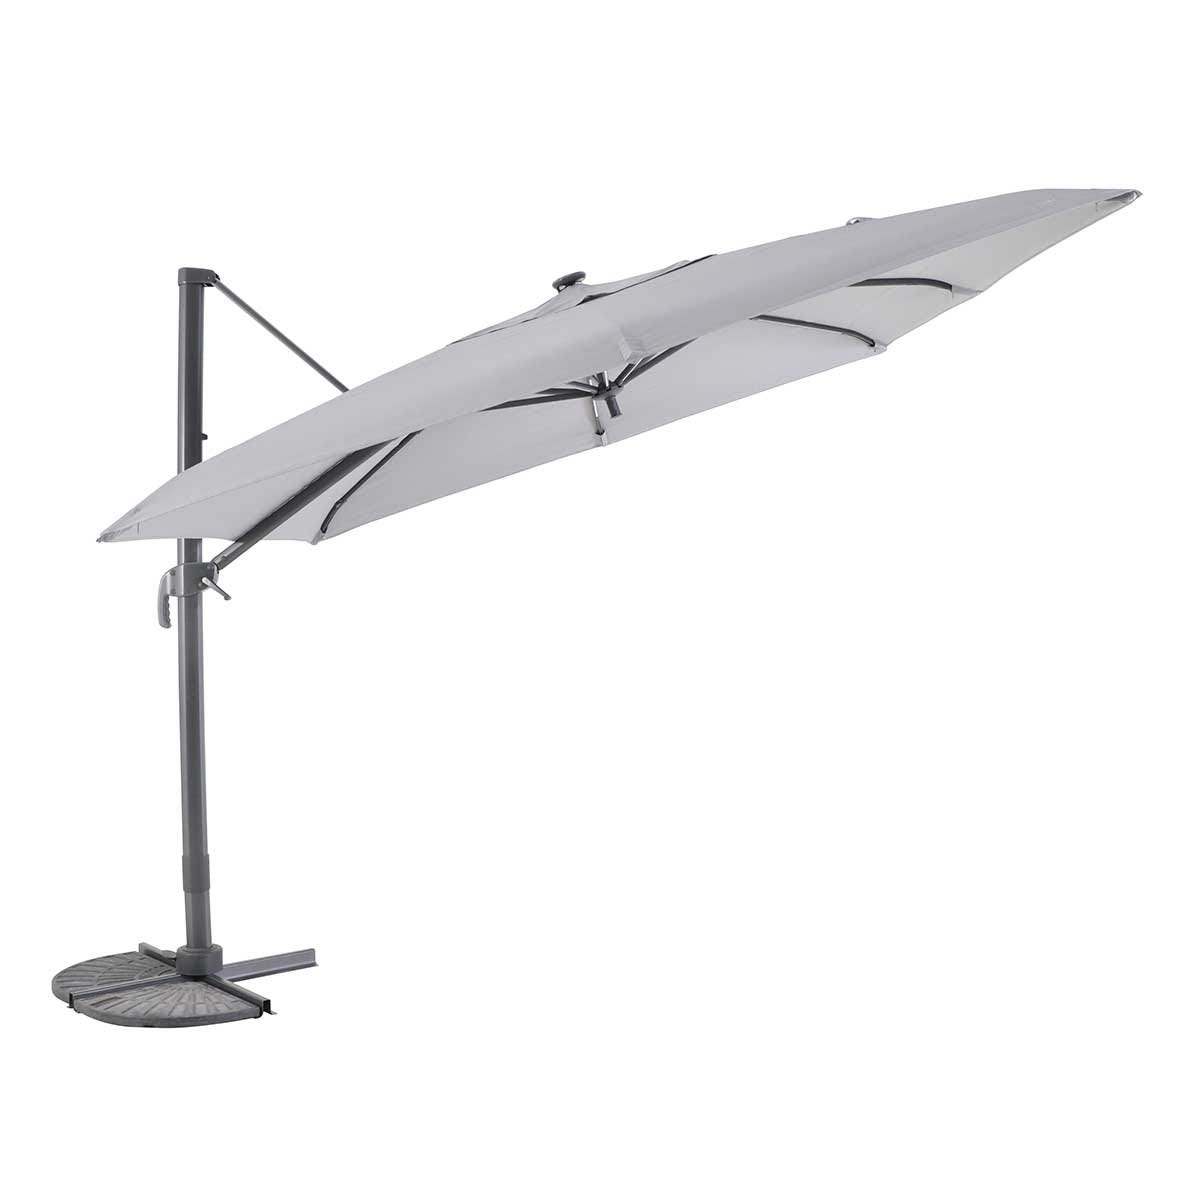 MWH Overhanging Cantilever Parasol (base not included) - Anthracite/Cream